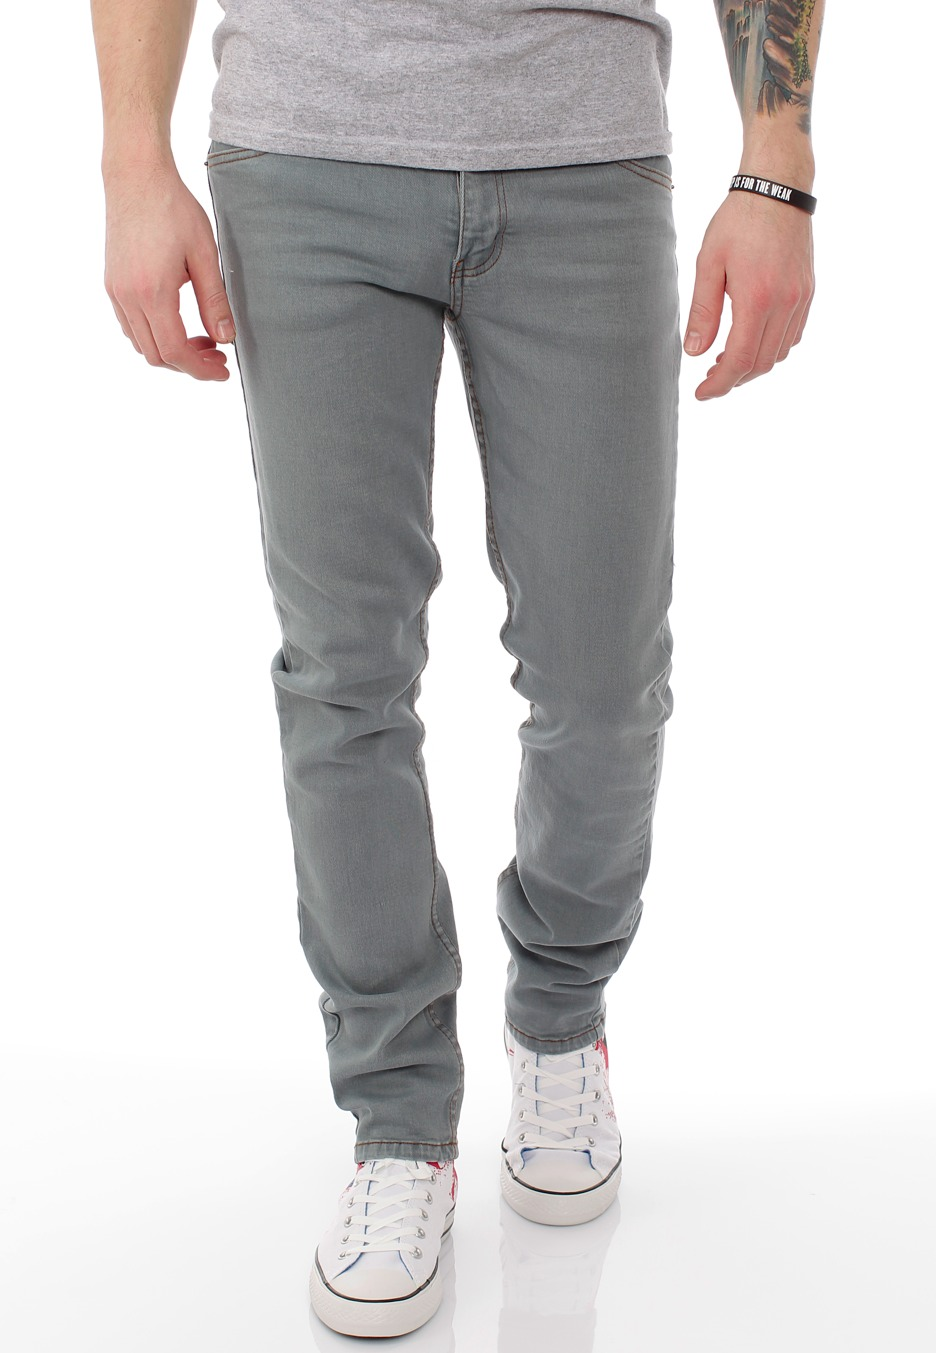 Cheap Monday - Tight Tint On Light Blue - Jeans - Impericon.com UK